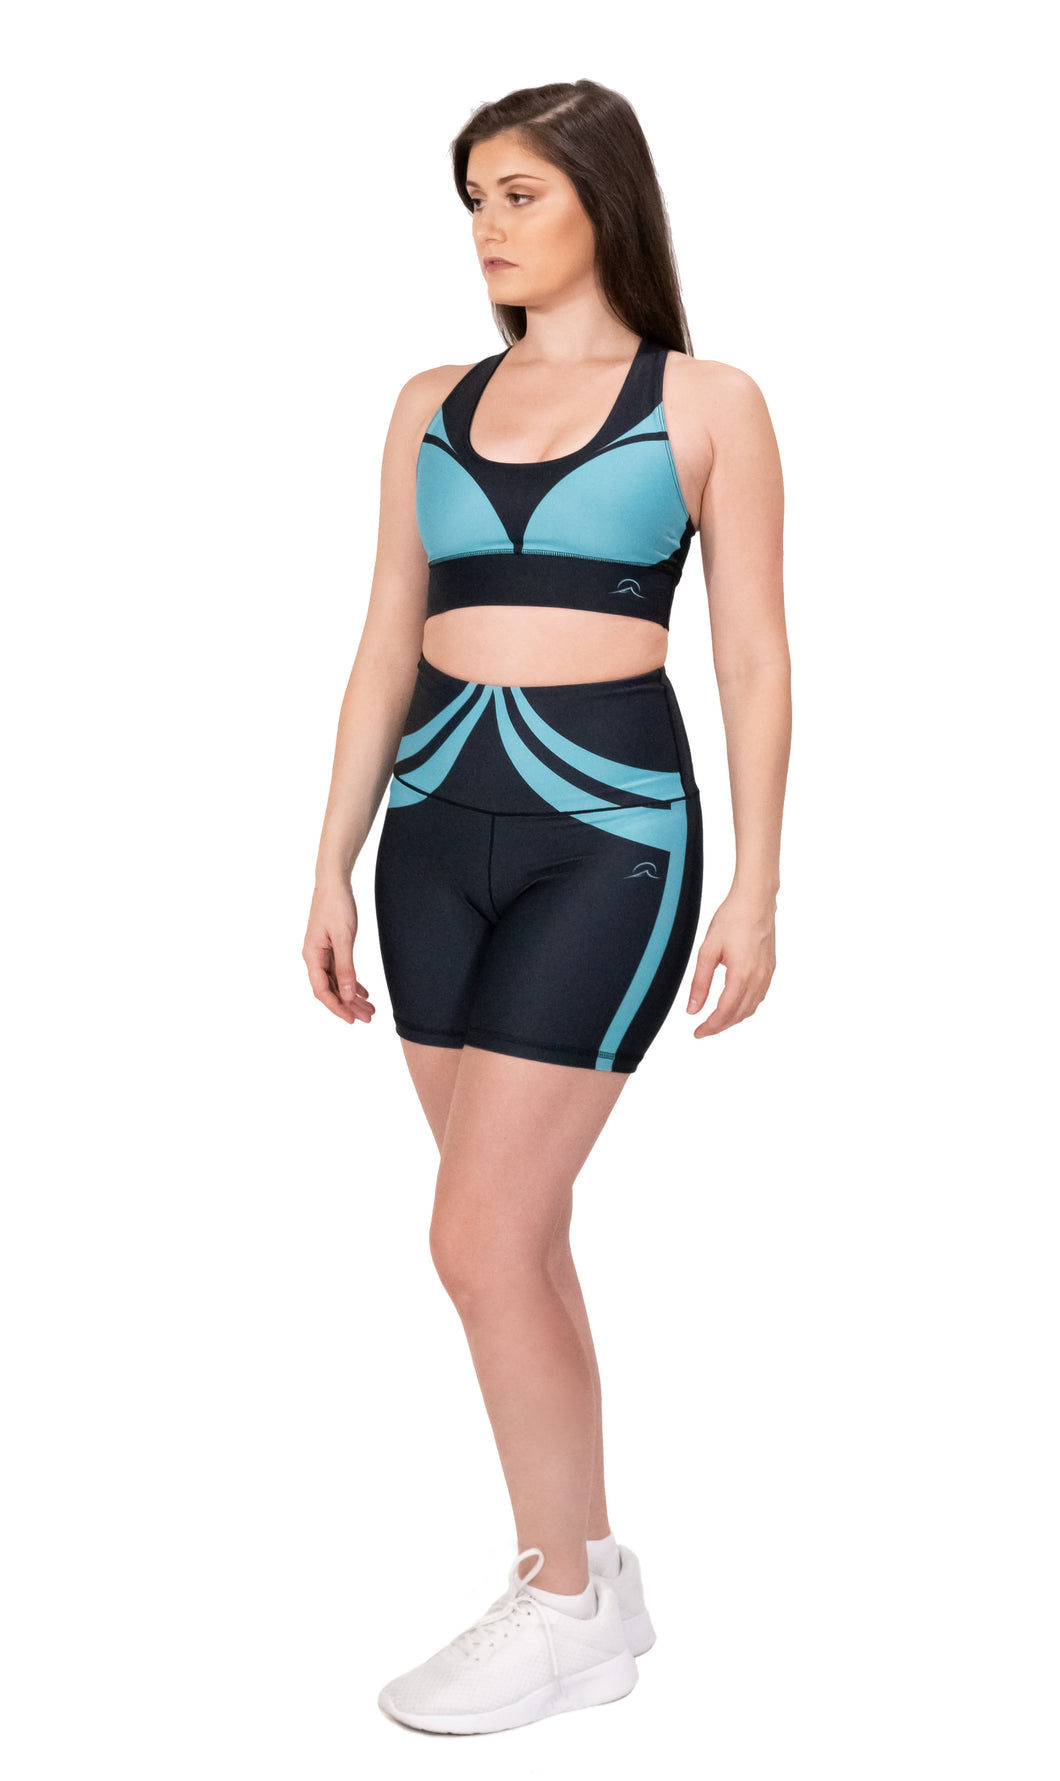 Yoga outfit with a base color black with an ocean green design over it, it includes sports bra and high waist biker shorts